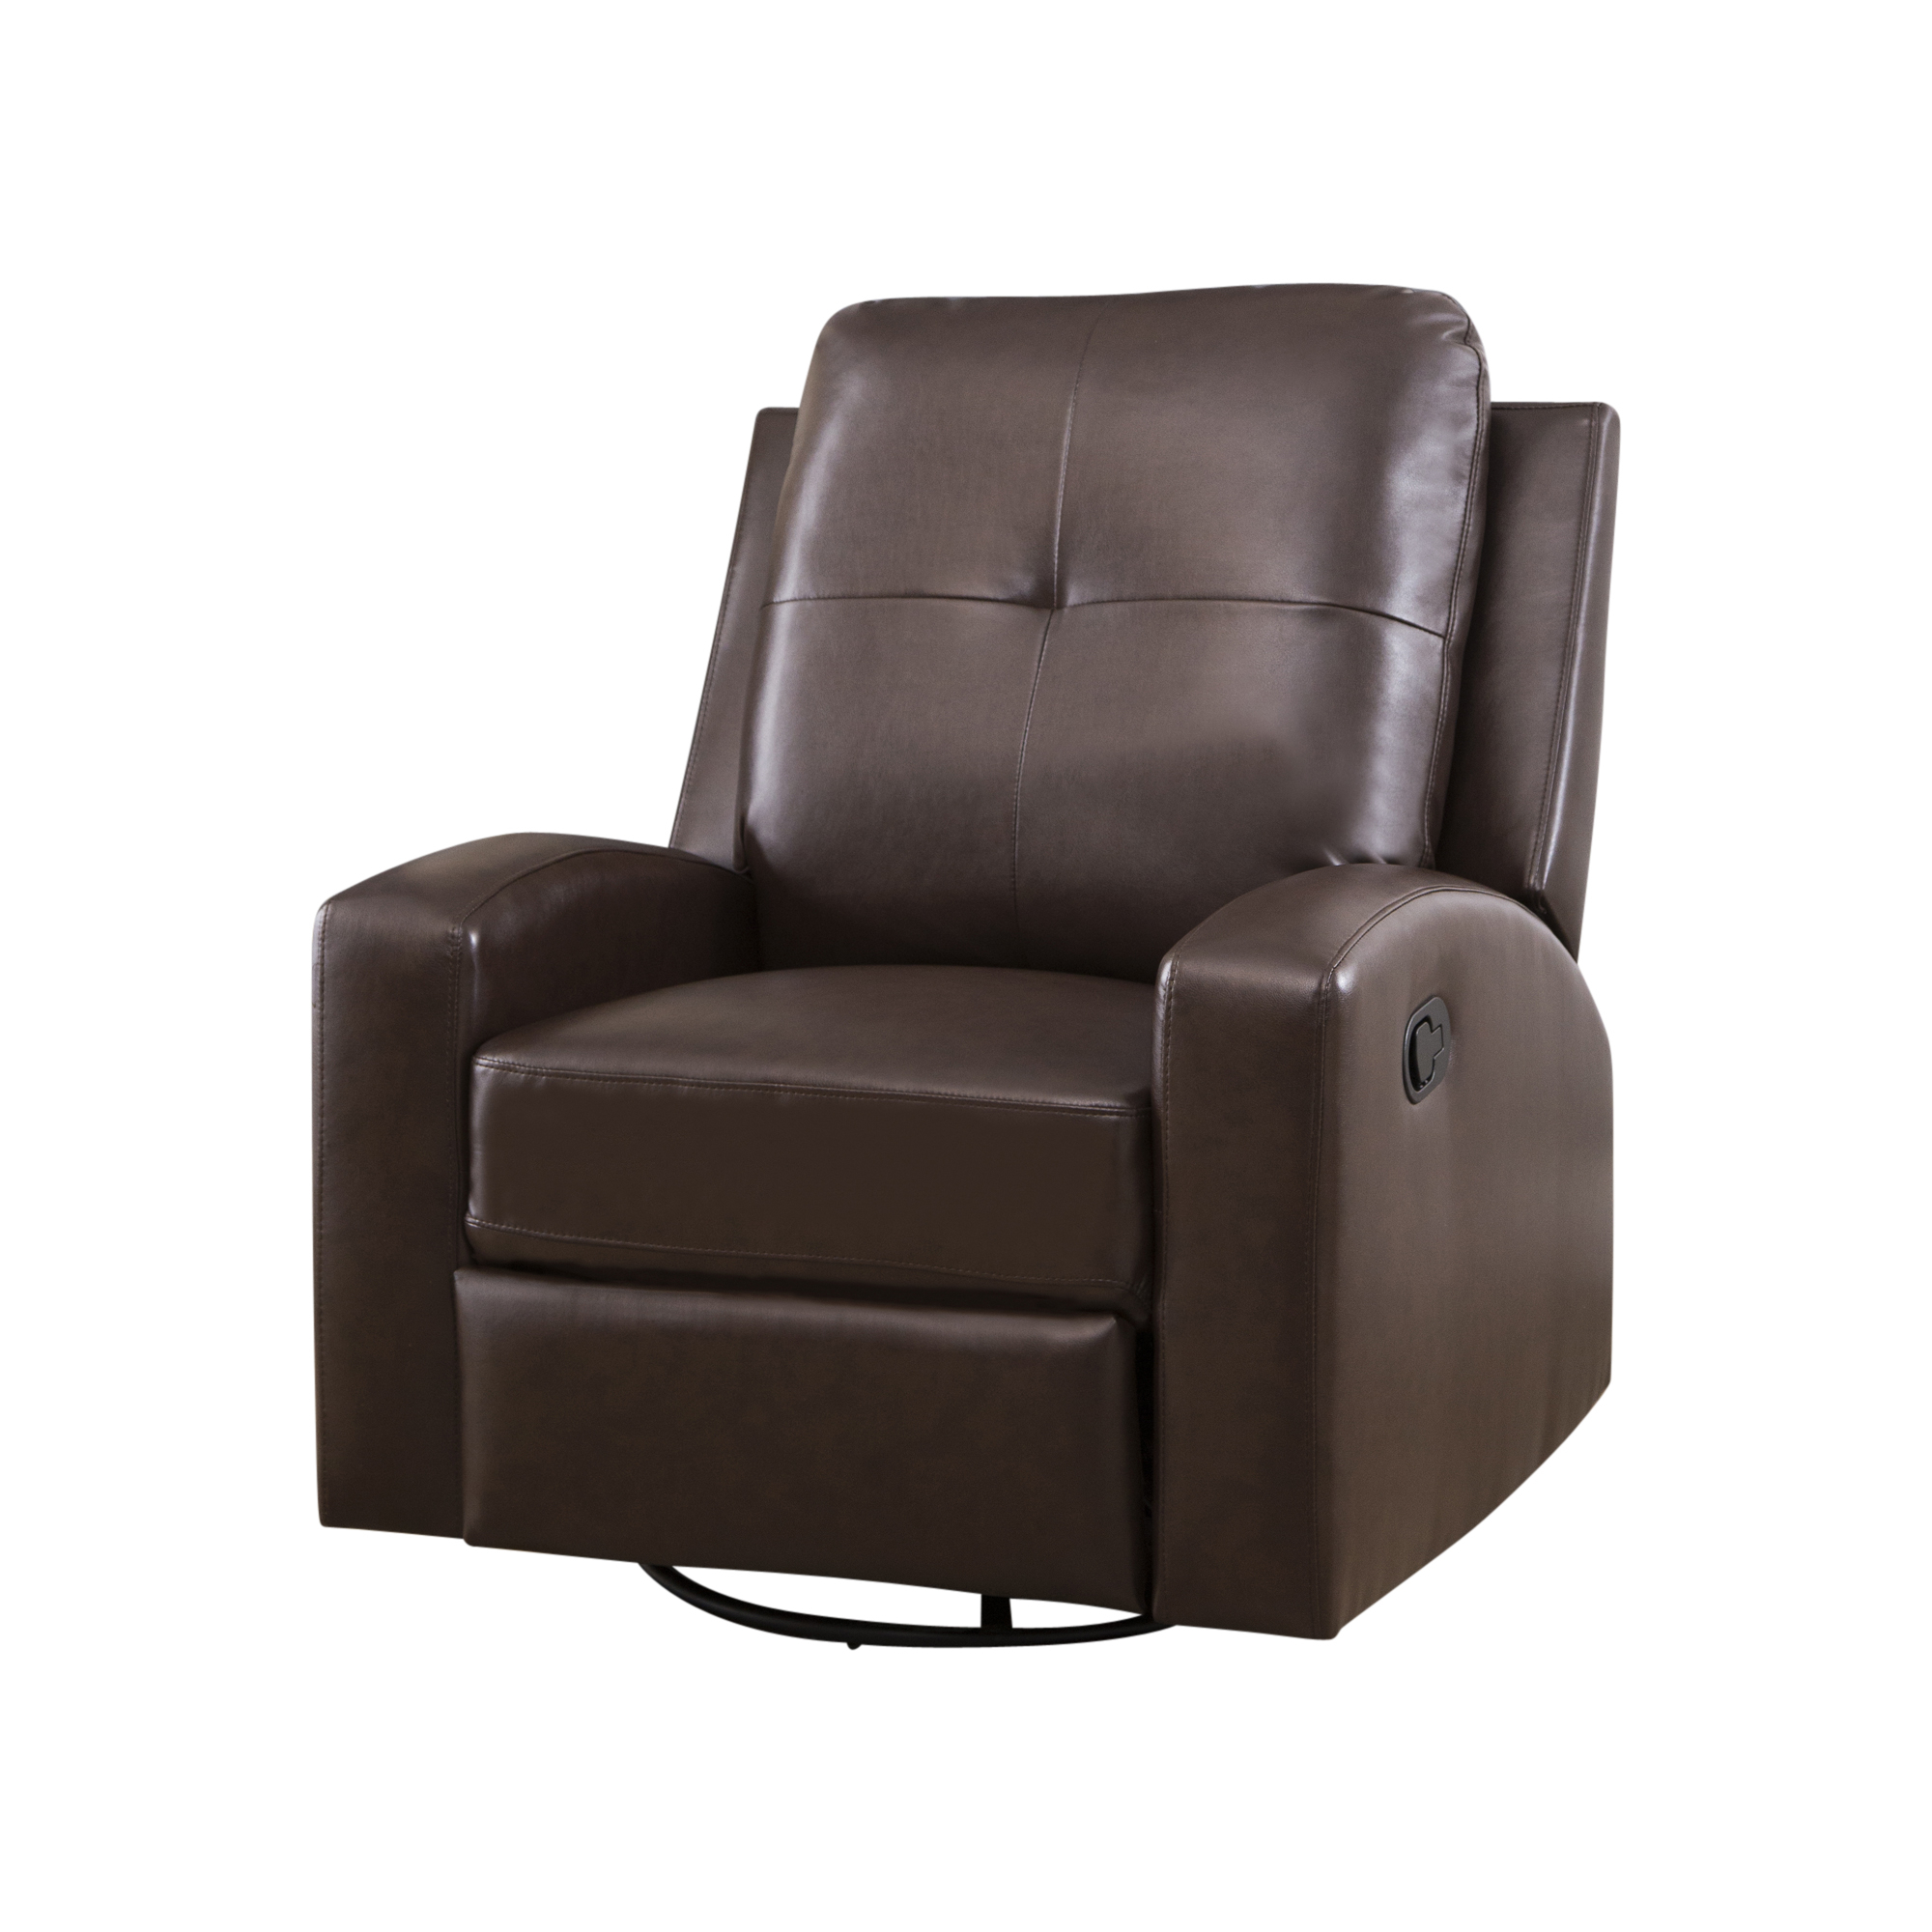 Well Liked Katrina Swivel Glider Recliner, Dark Brown – Walmart In Katrina Grey Swivel Glider Chairs (View 19 of 20)